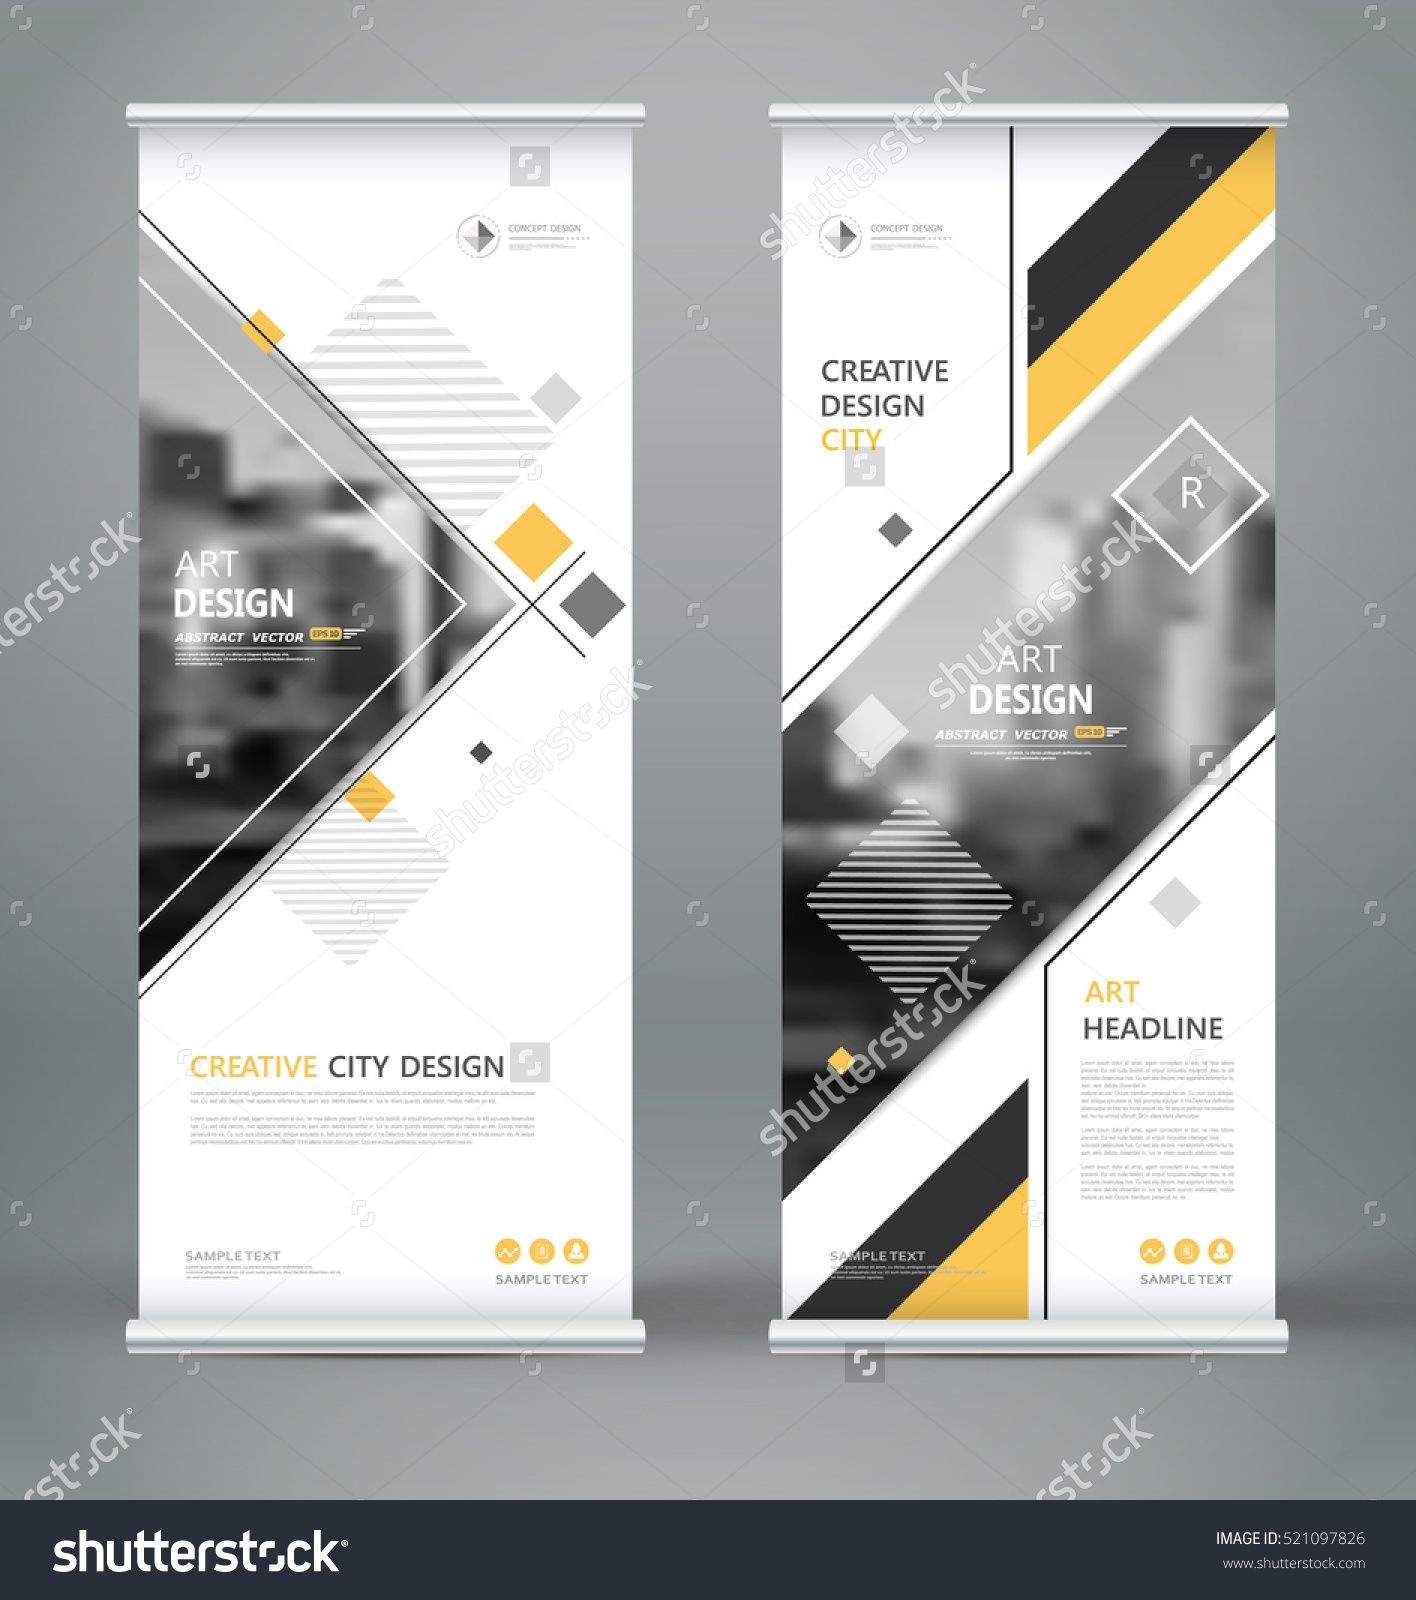 5492e4da2 Info banner frame. Text font. Title sheet model set. Modern vector front  page. City view brand flag. Triangle figures icon. Ad flyer fiber